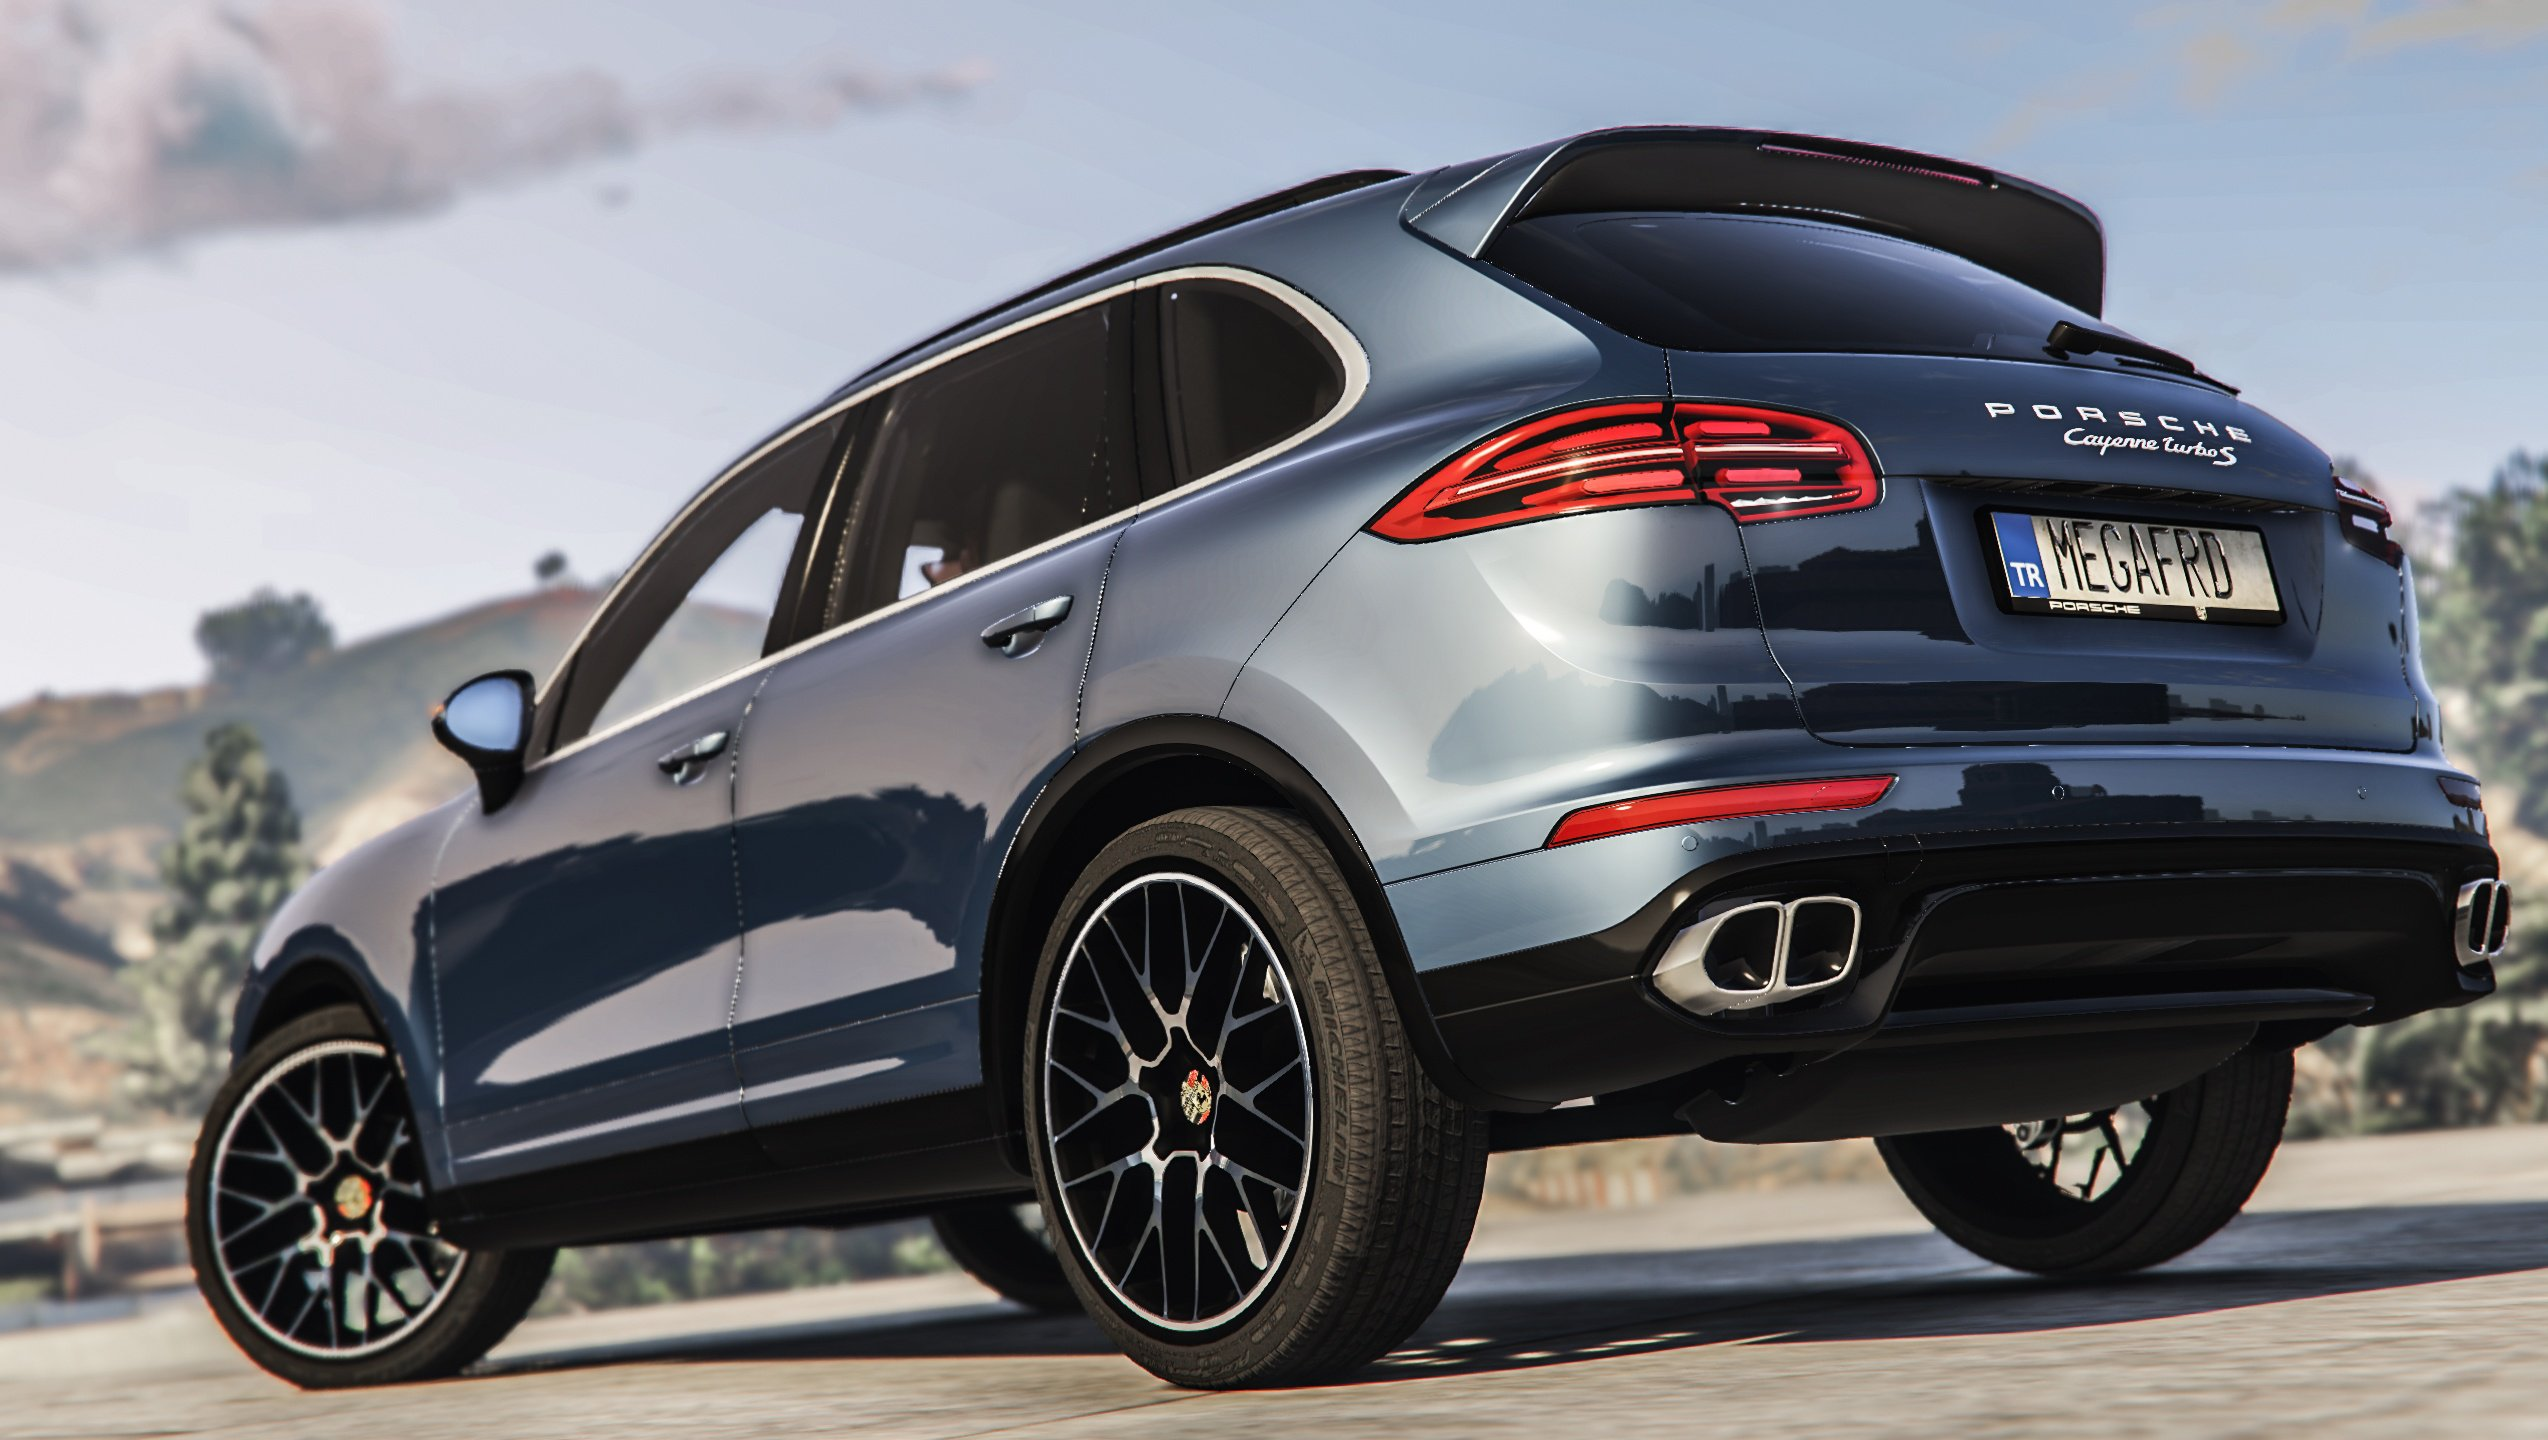 porsche cayenne turbo s 2016 add on replace vehicules pour gta v sur gta modding. Black Bedroom Furniture Sets. Home Design Ideas